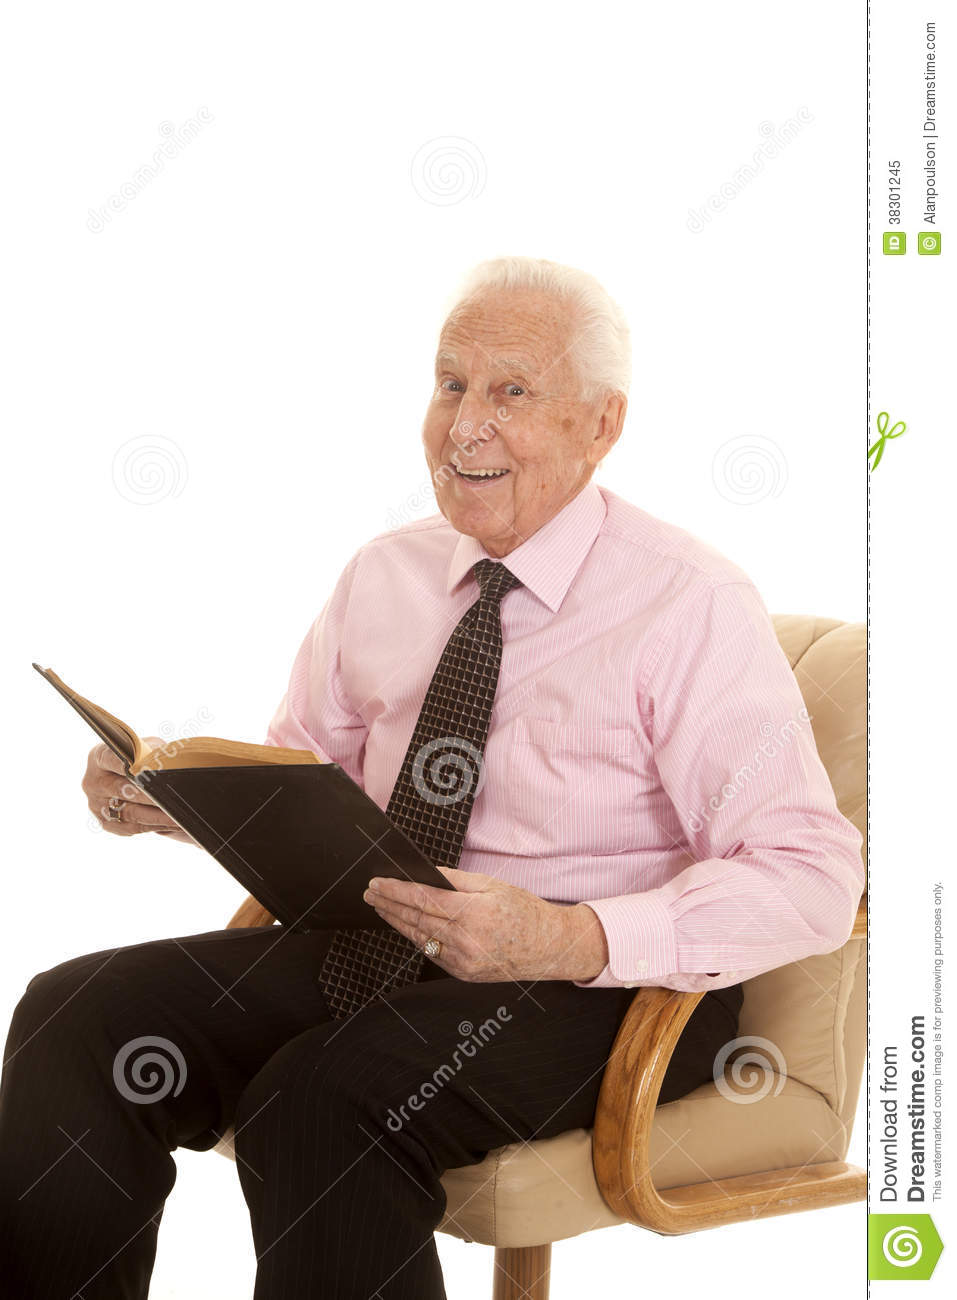 Elderly Man Pink Shirt Book Happy Royalty Free Stock Photo - Image ...